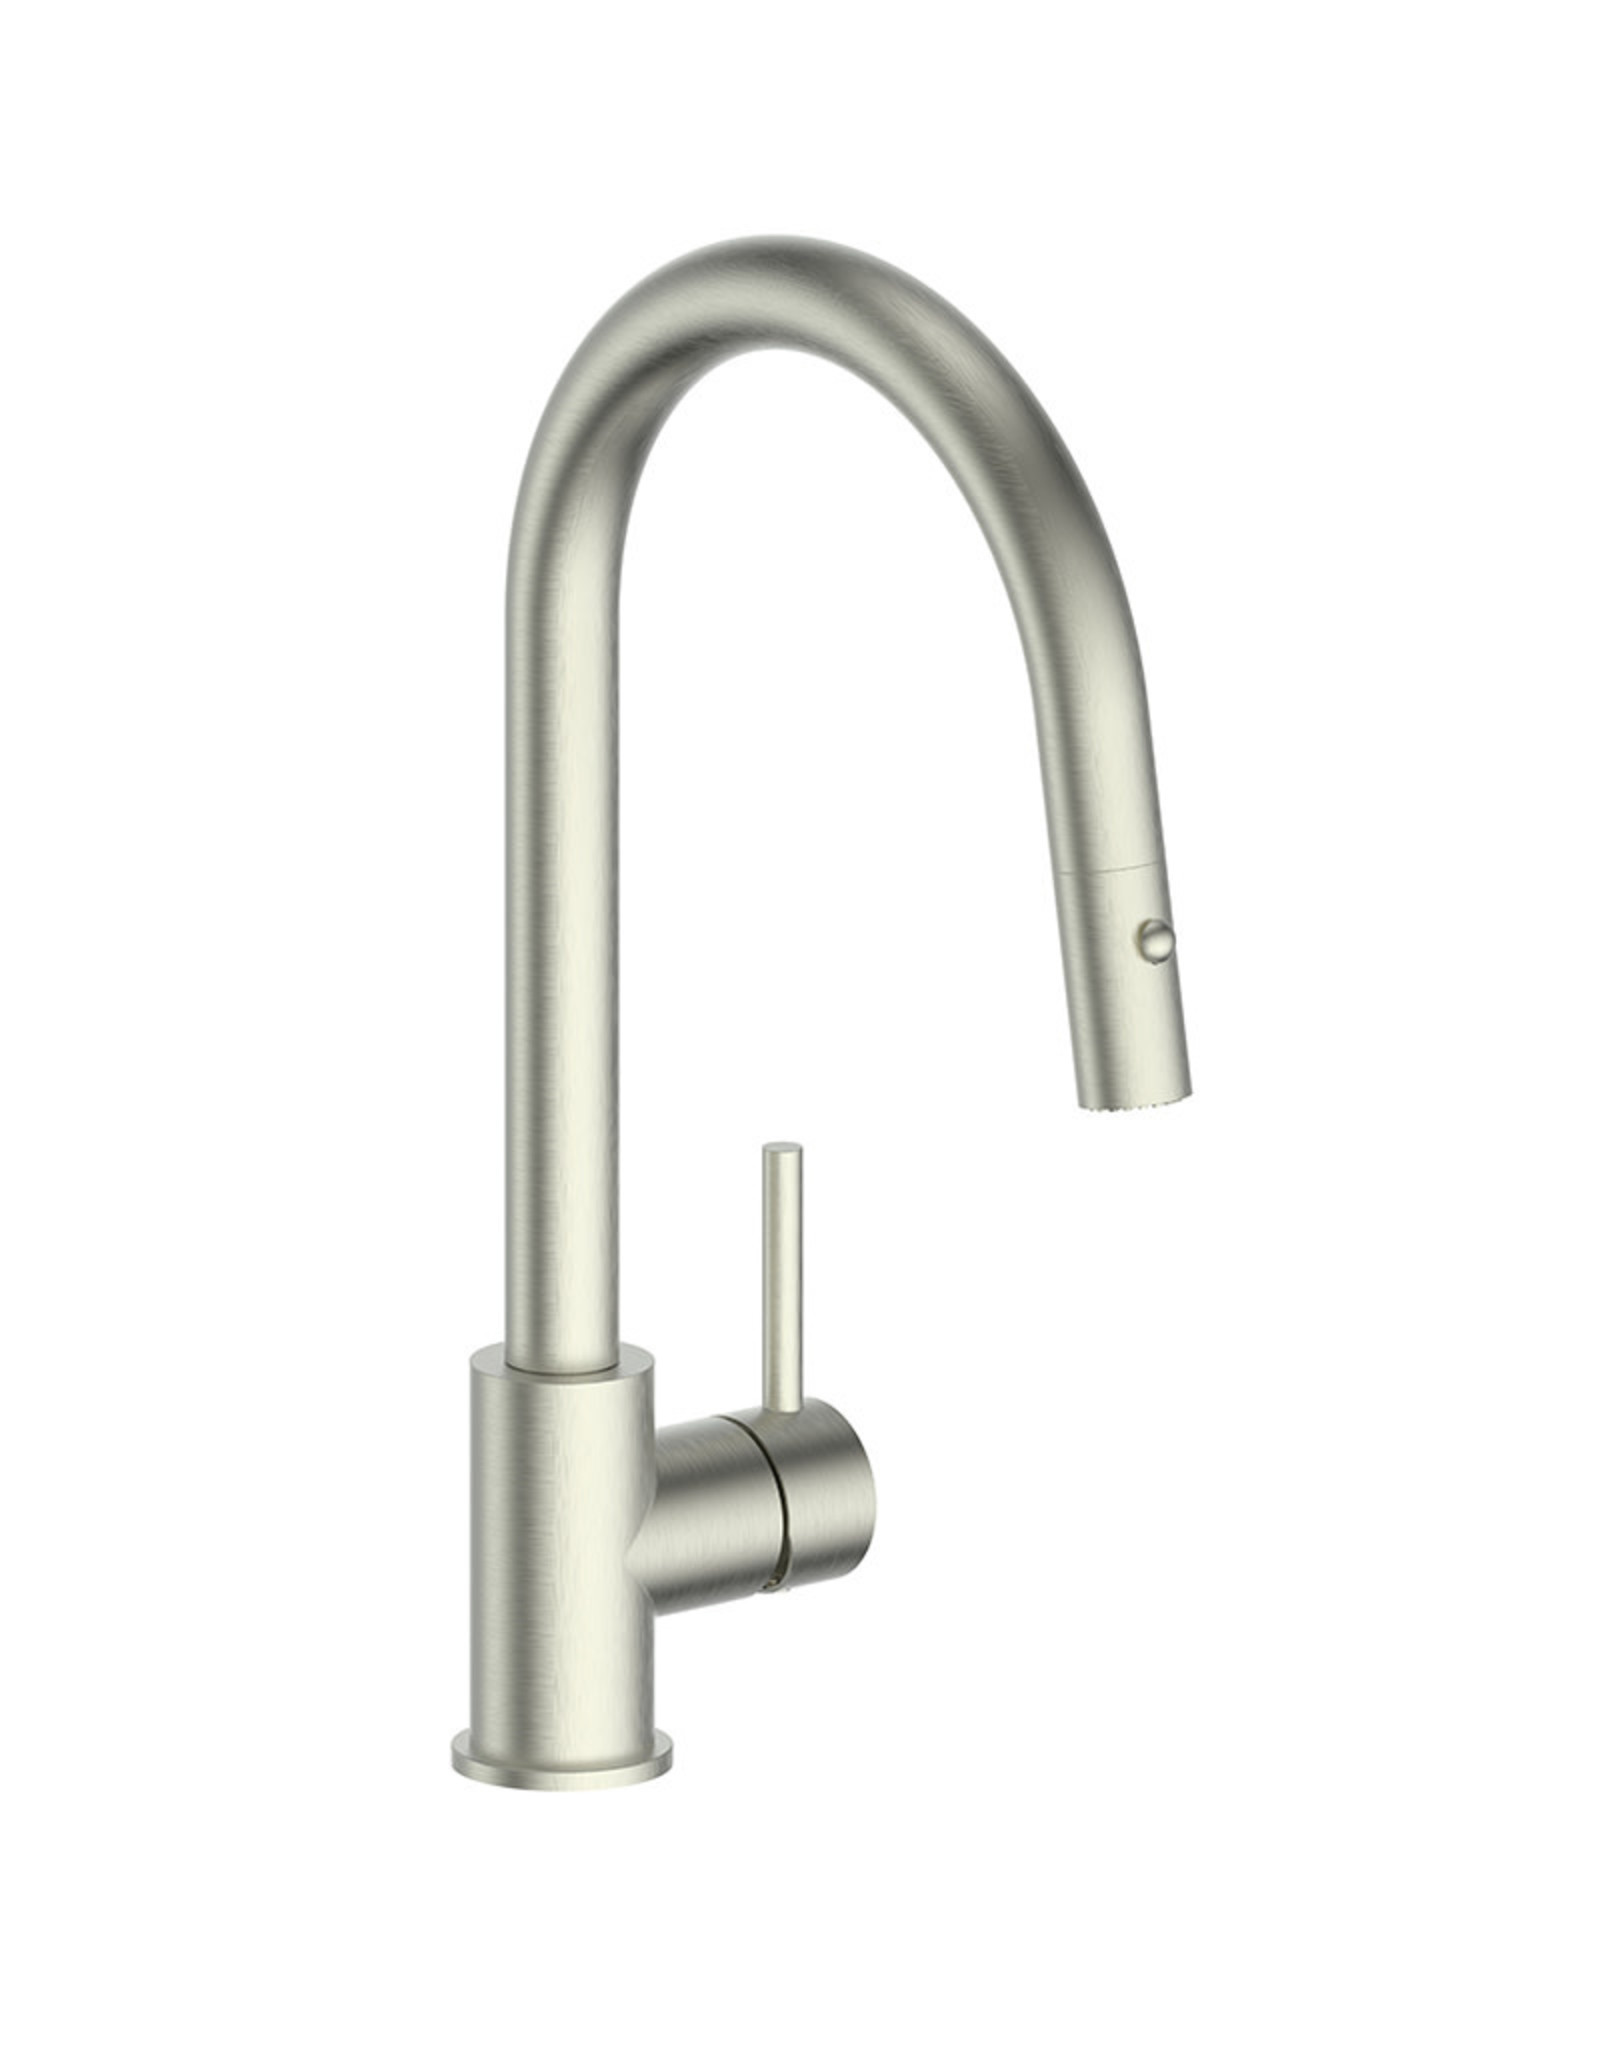 Vogt VOGT TRAUN B - KITCHEN FAUCET WITH 2-FUNCTION PULL-DOWN SPRAY